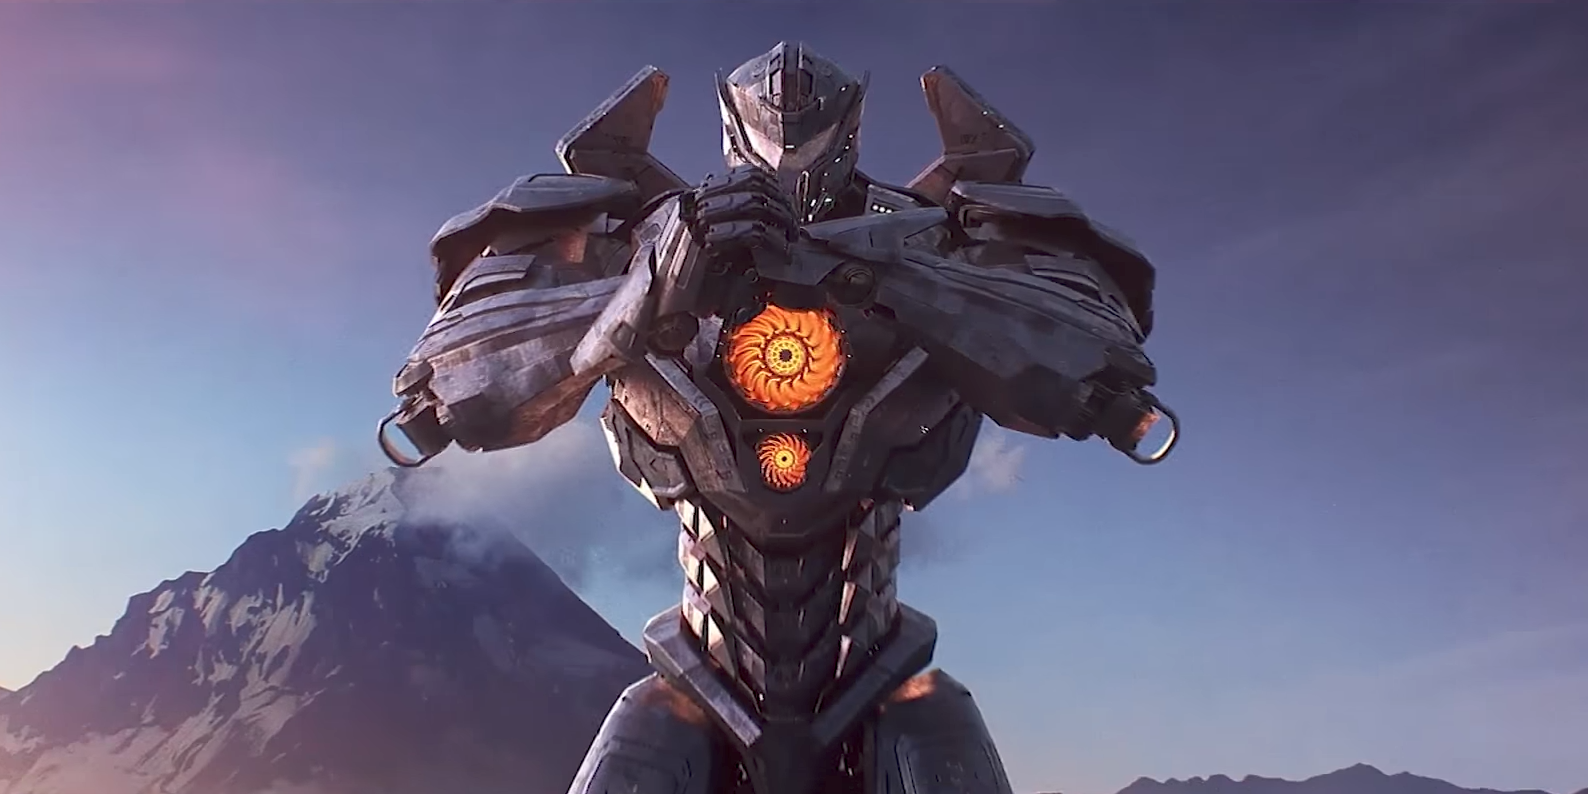 The 'Pacific Rim' sequel is happening—and it looks even more epic